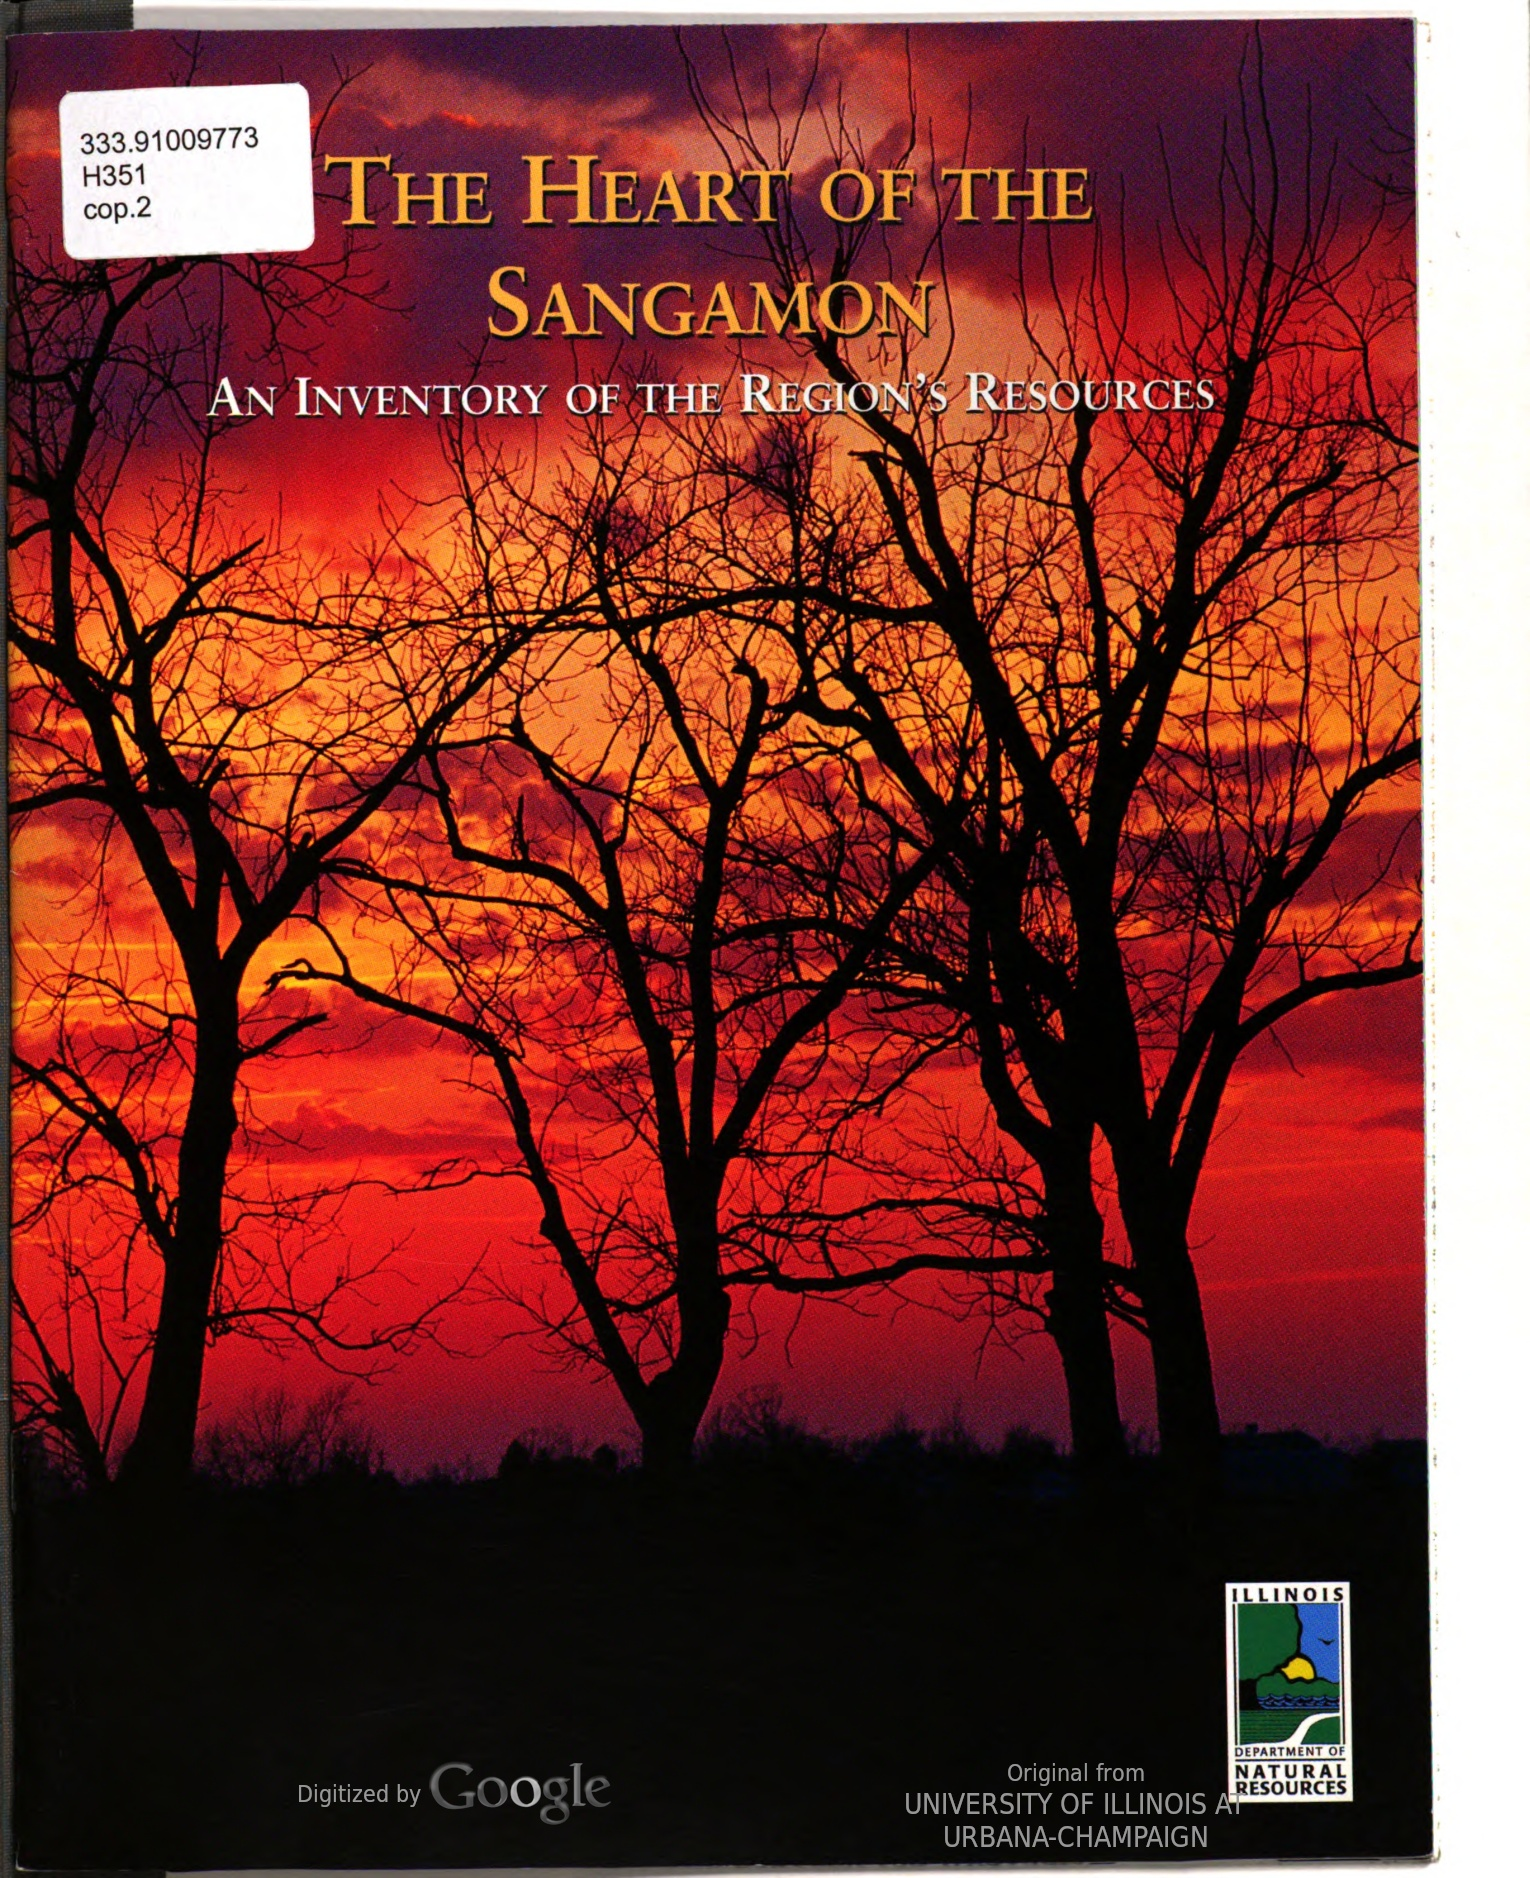 The Heart of the Sangamon : An Inventory of the Region's Resources, cover